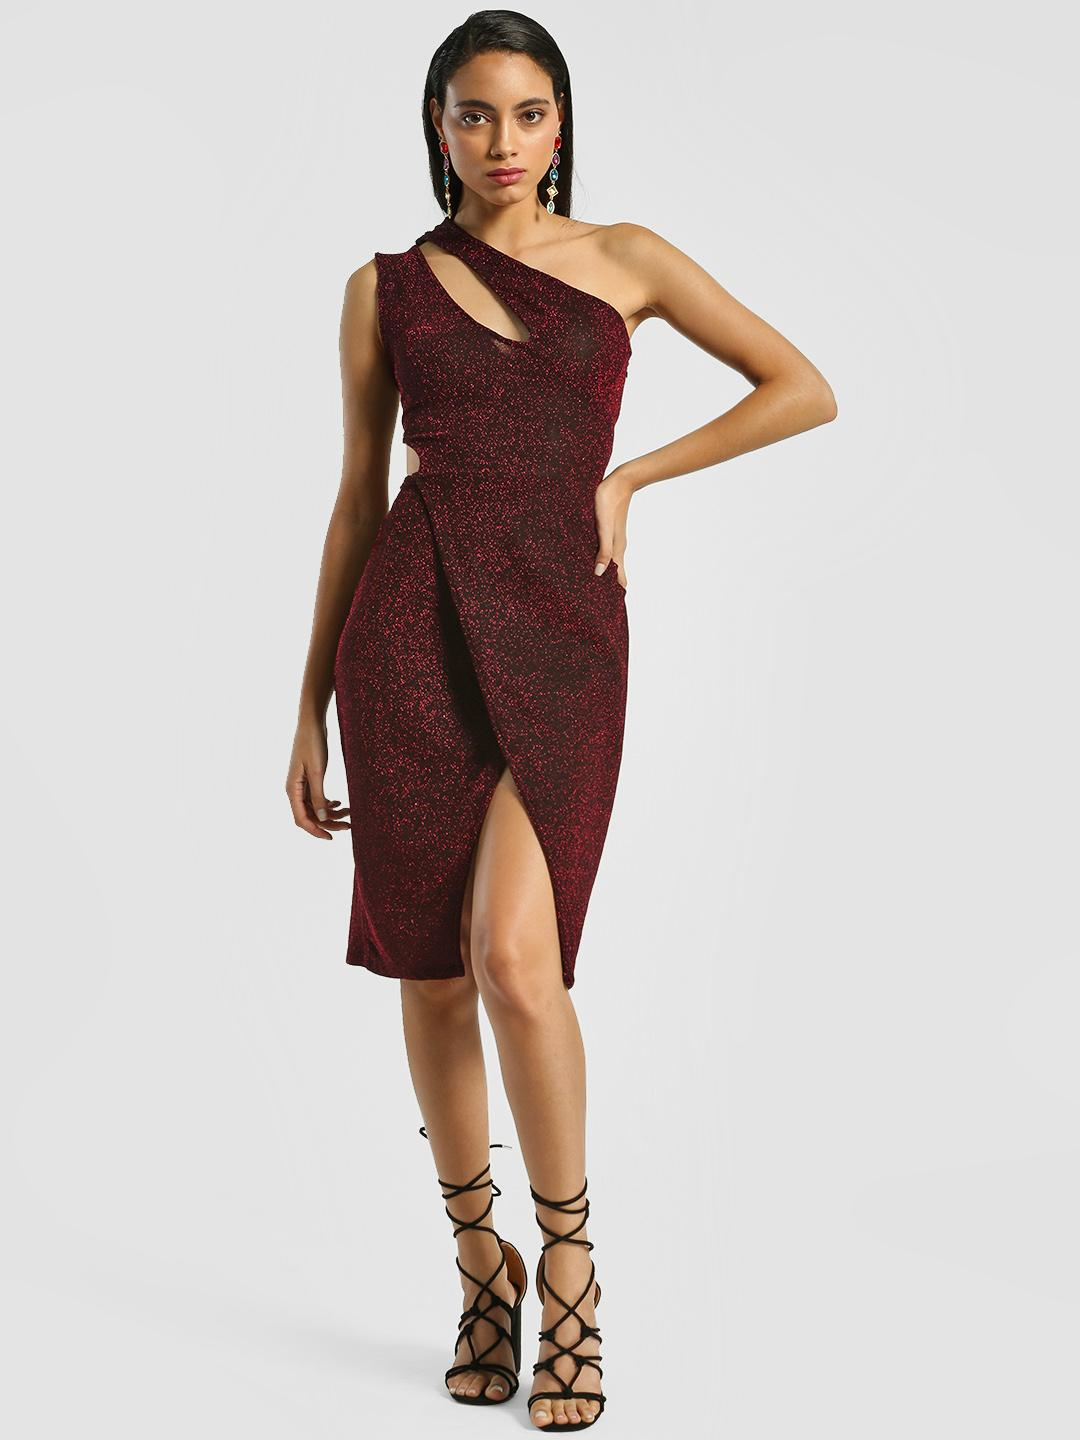 Shivan & Narresh X KOOVS Red Cut-Out One Shoulder Bodycon Dress 1